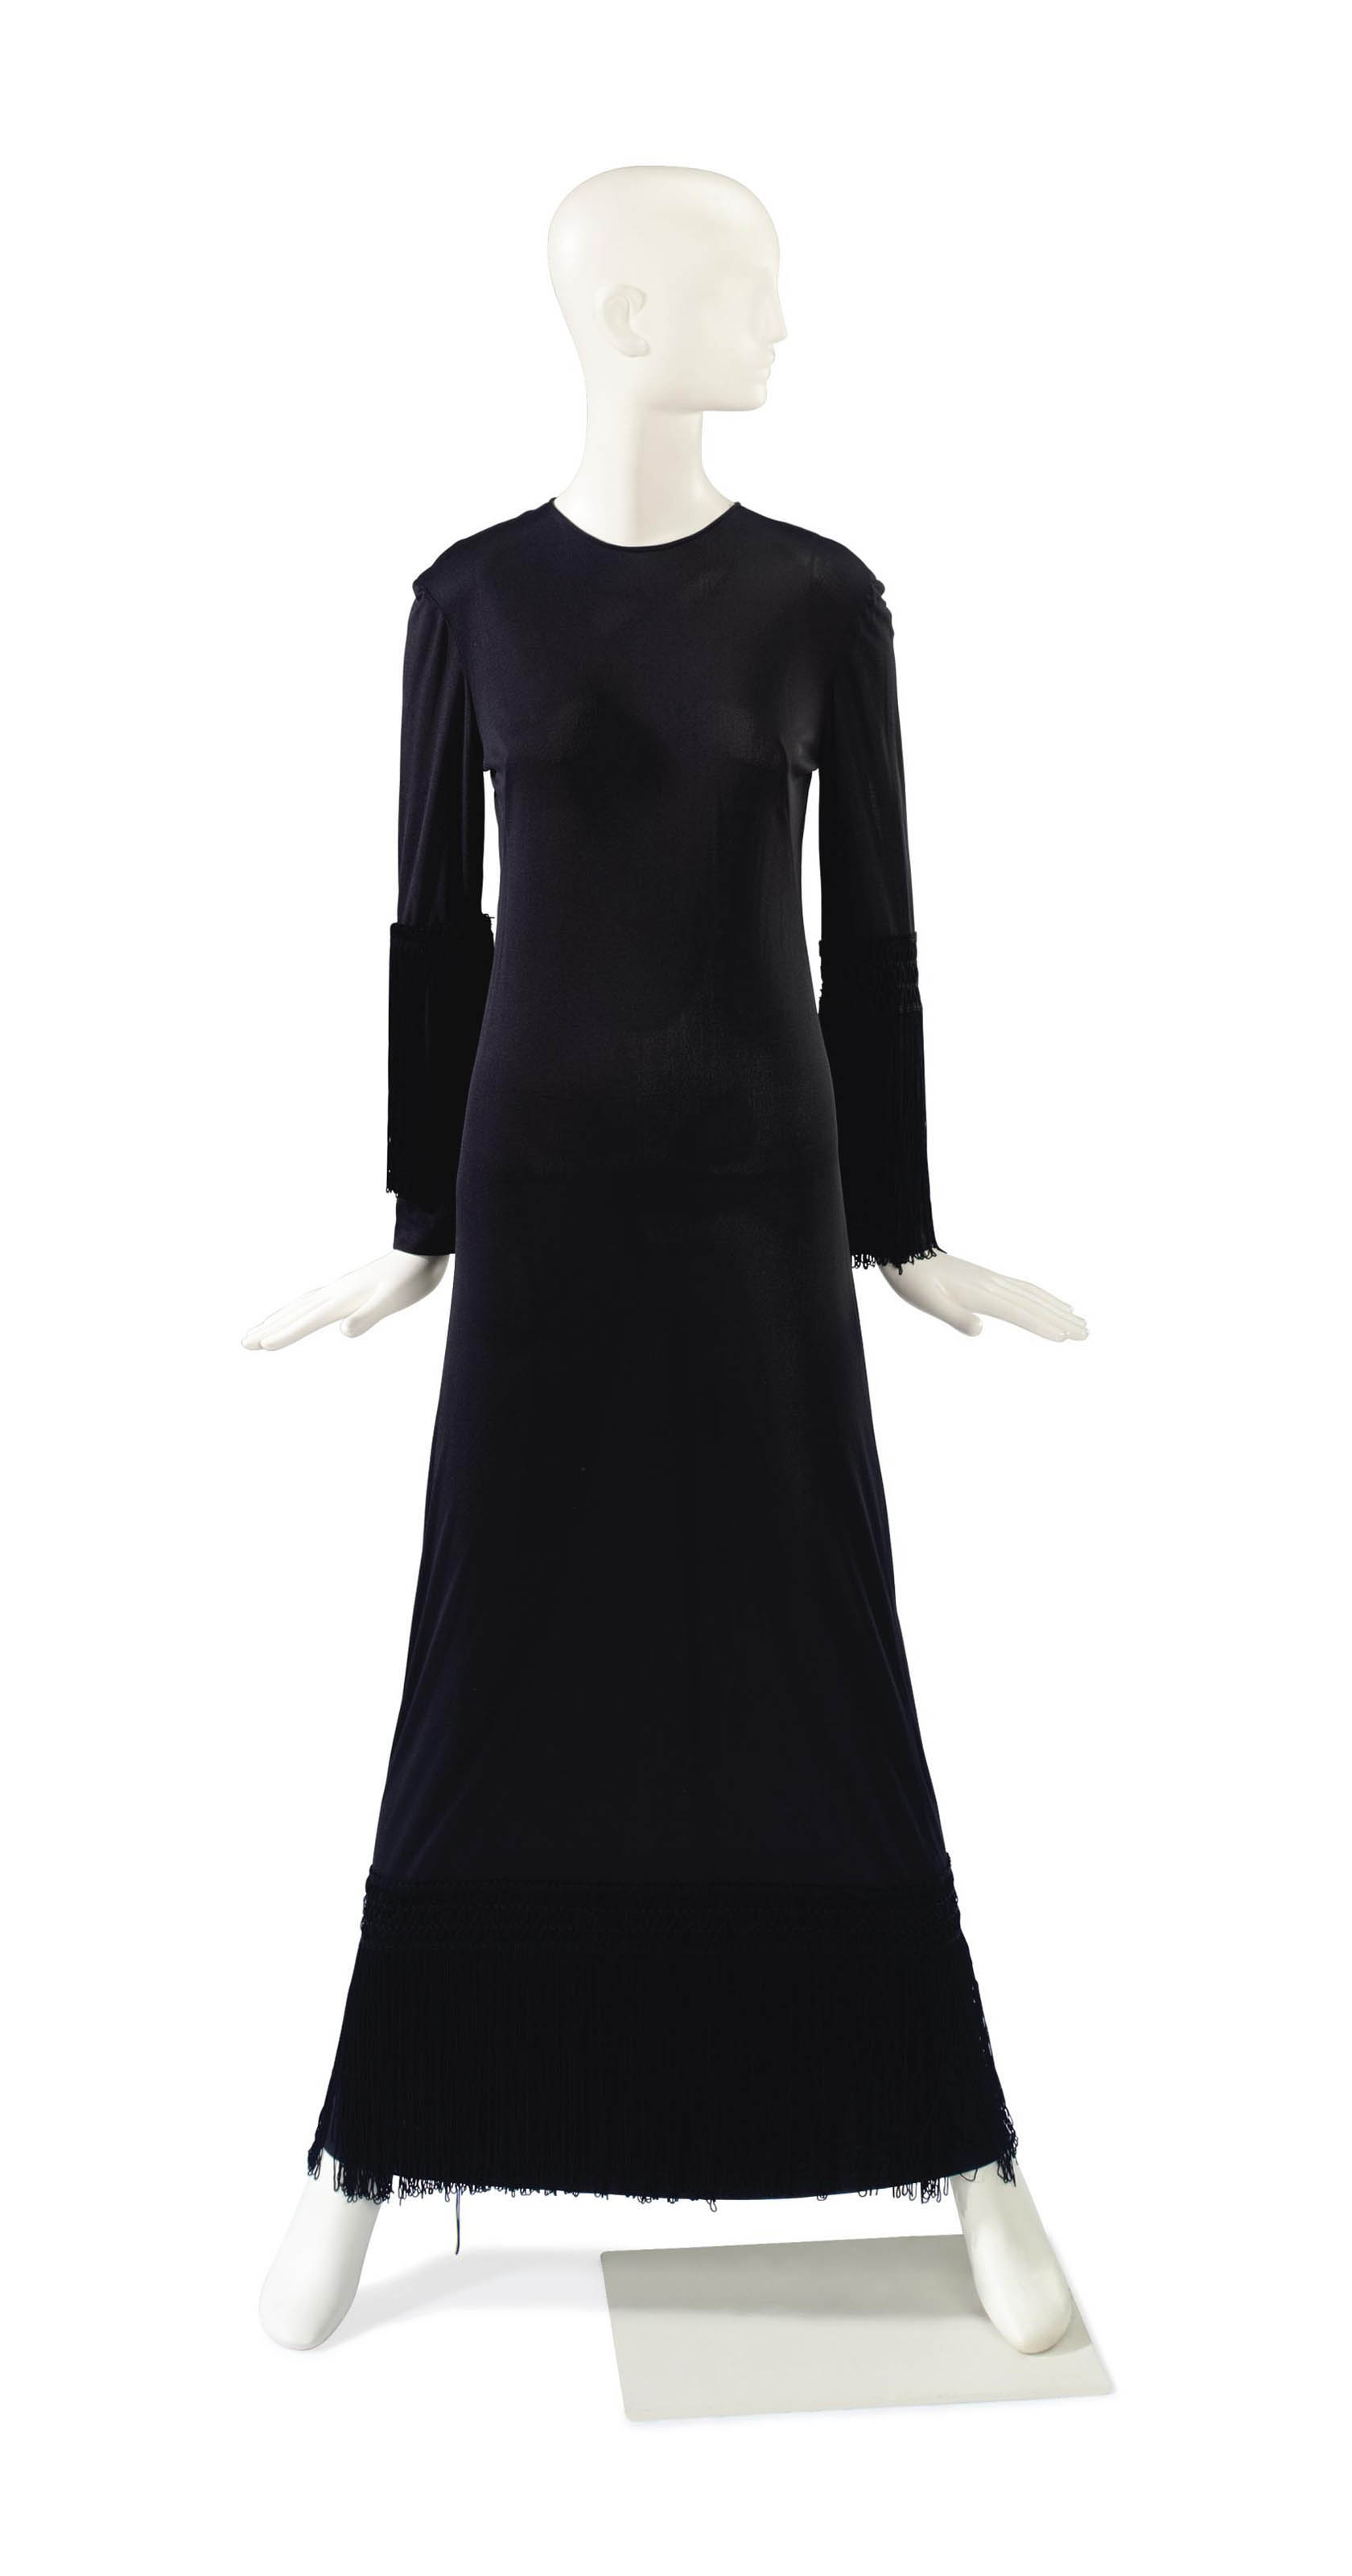 AN EMILIO PUCCI BLACK SILK JERSEY FRINGE TRIMMED EVENING GOWN